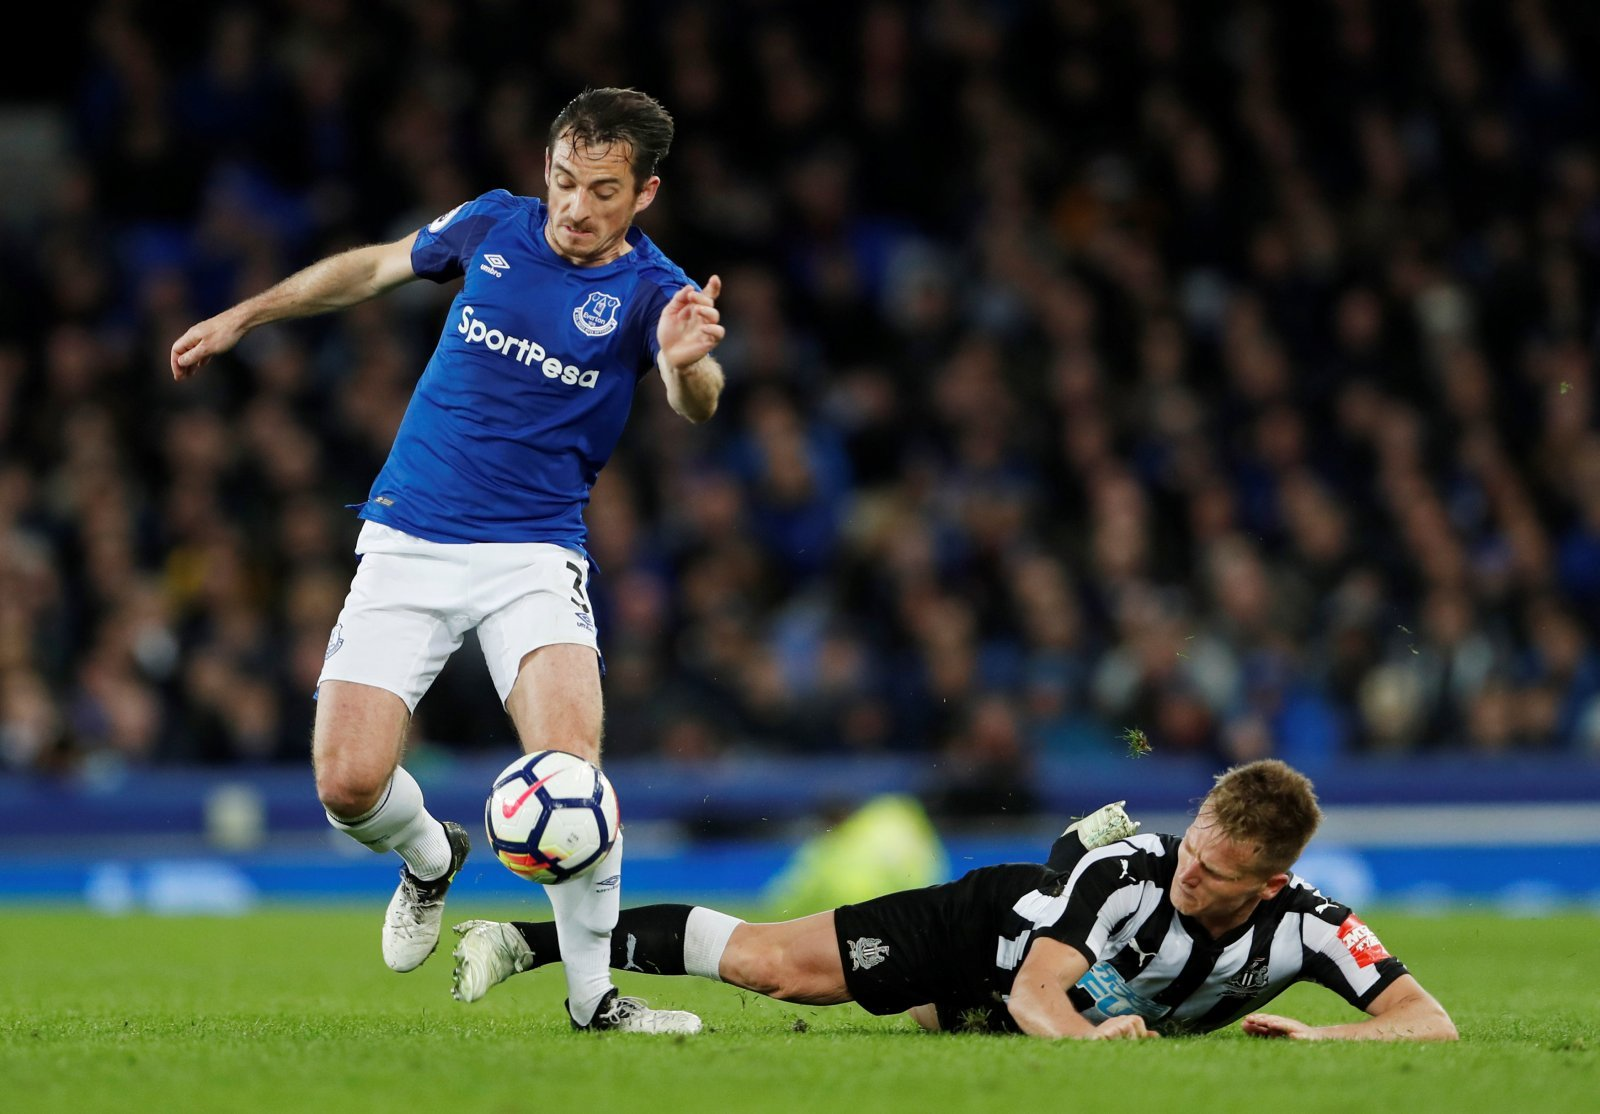 Baines' Everton career looks all but over despite backing from Silva